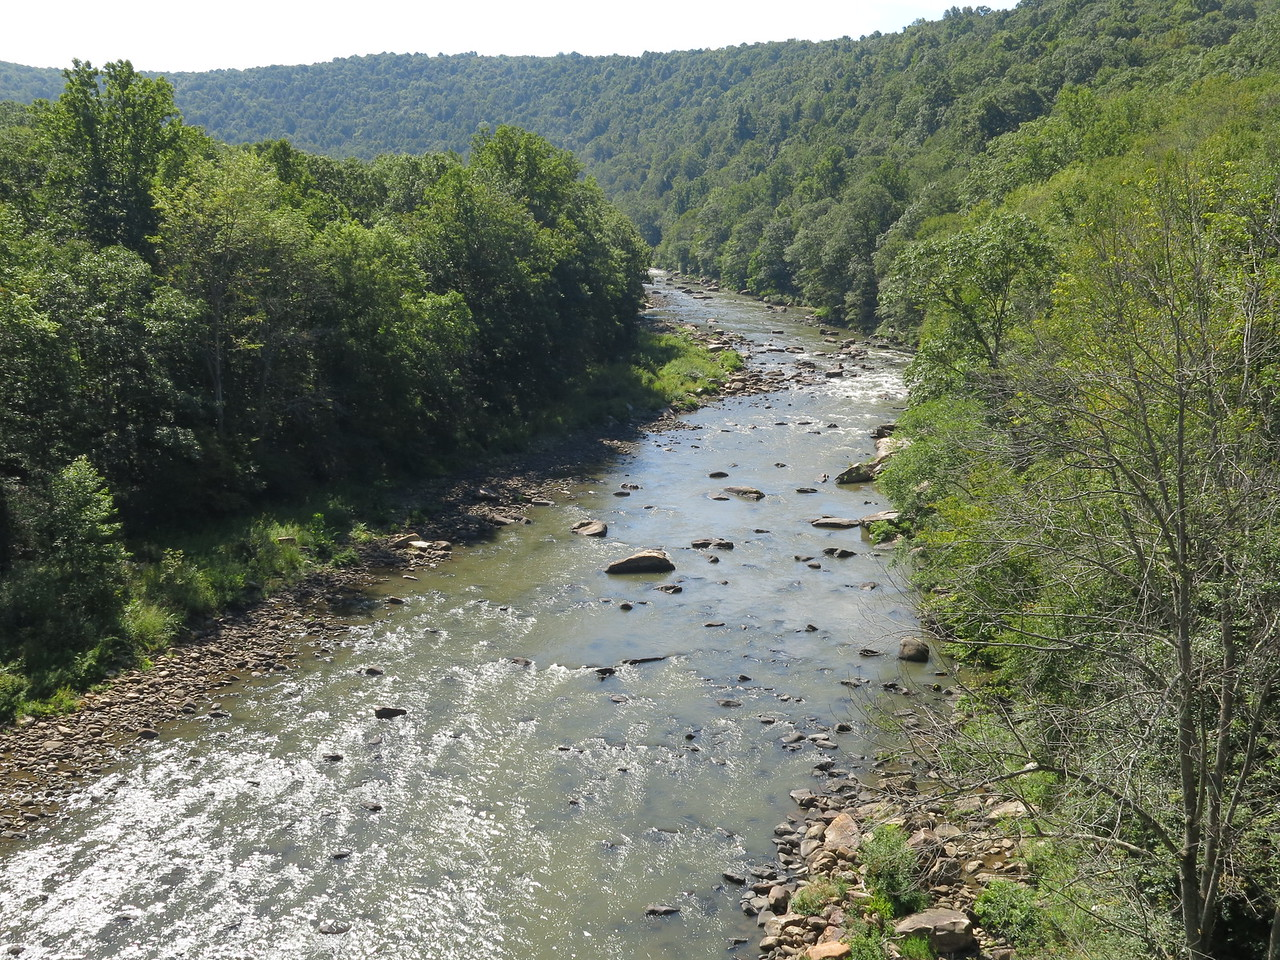 The Casselman River makes a big horseshoe curve around the Pinkerton Horn